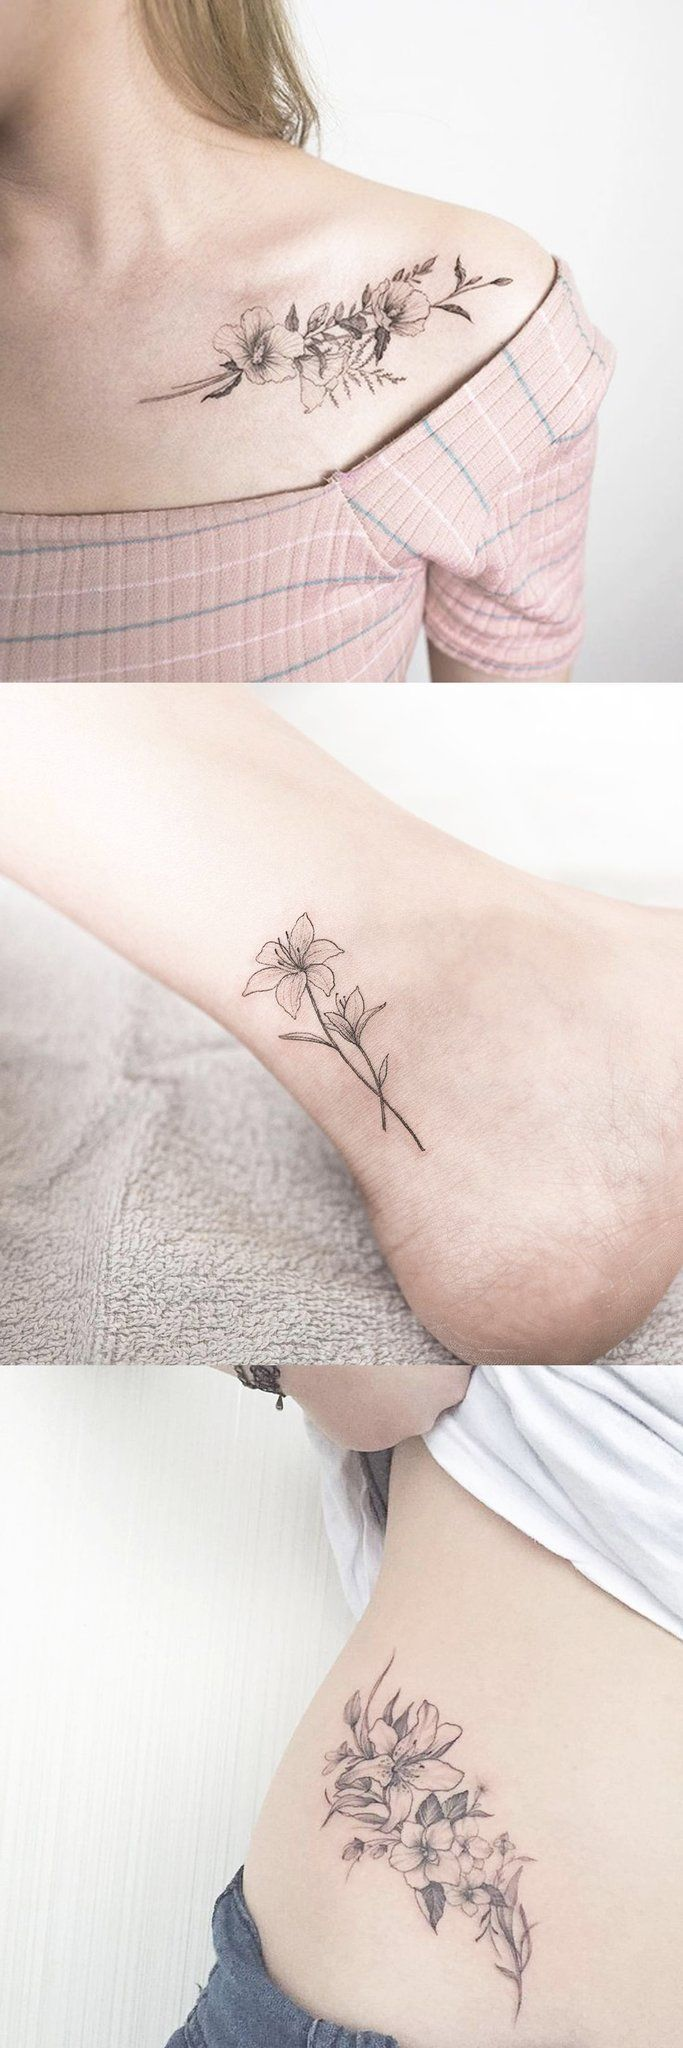 Delicate Sketched Flower Shoulder Tattoo Ideas – Wild Realistic Floral Ankle … # Flower # Ideas # Shoulder # Sketched # Tattoo